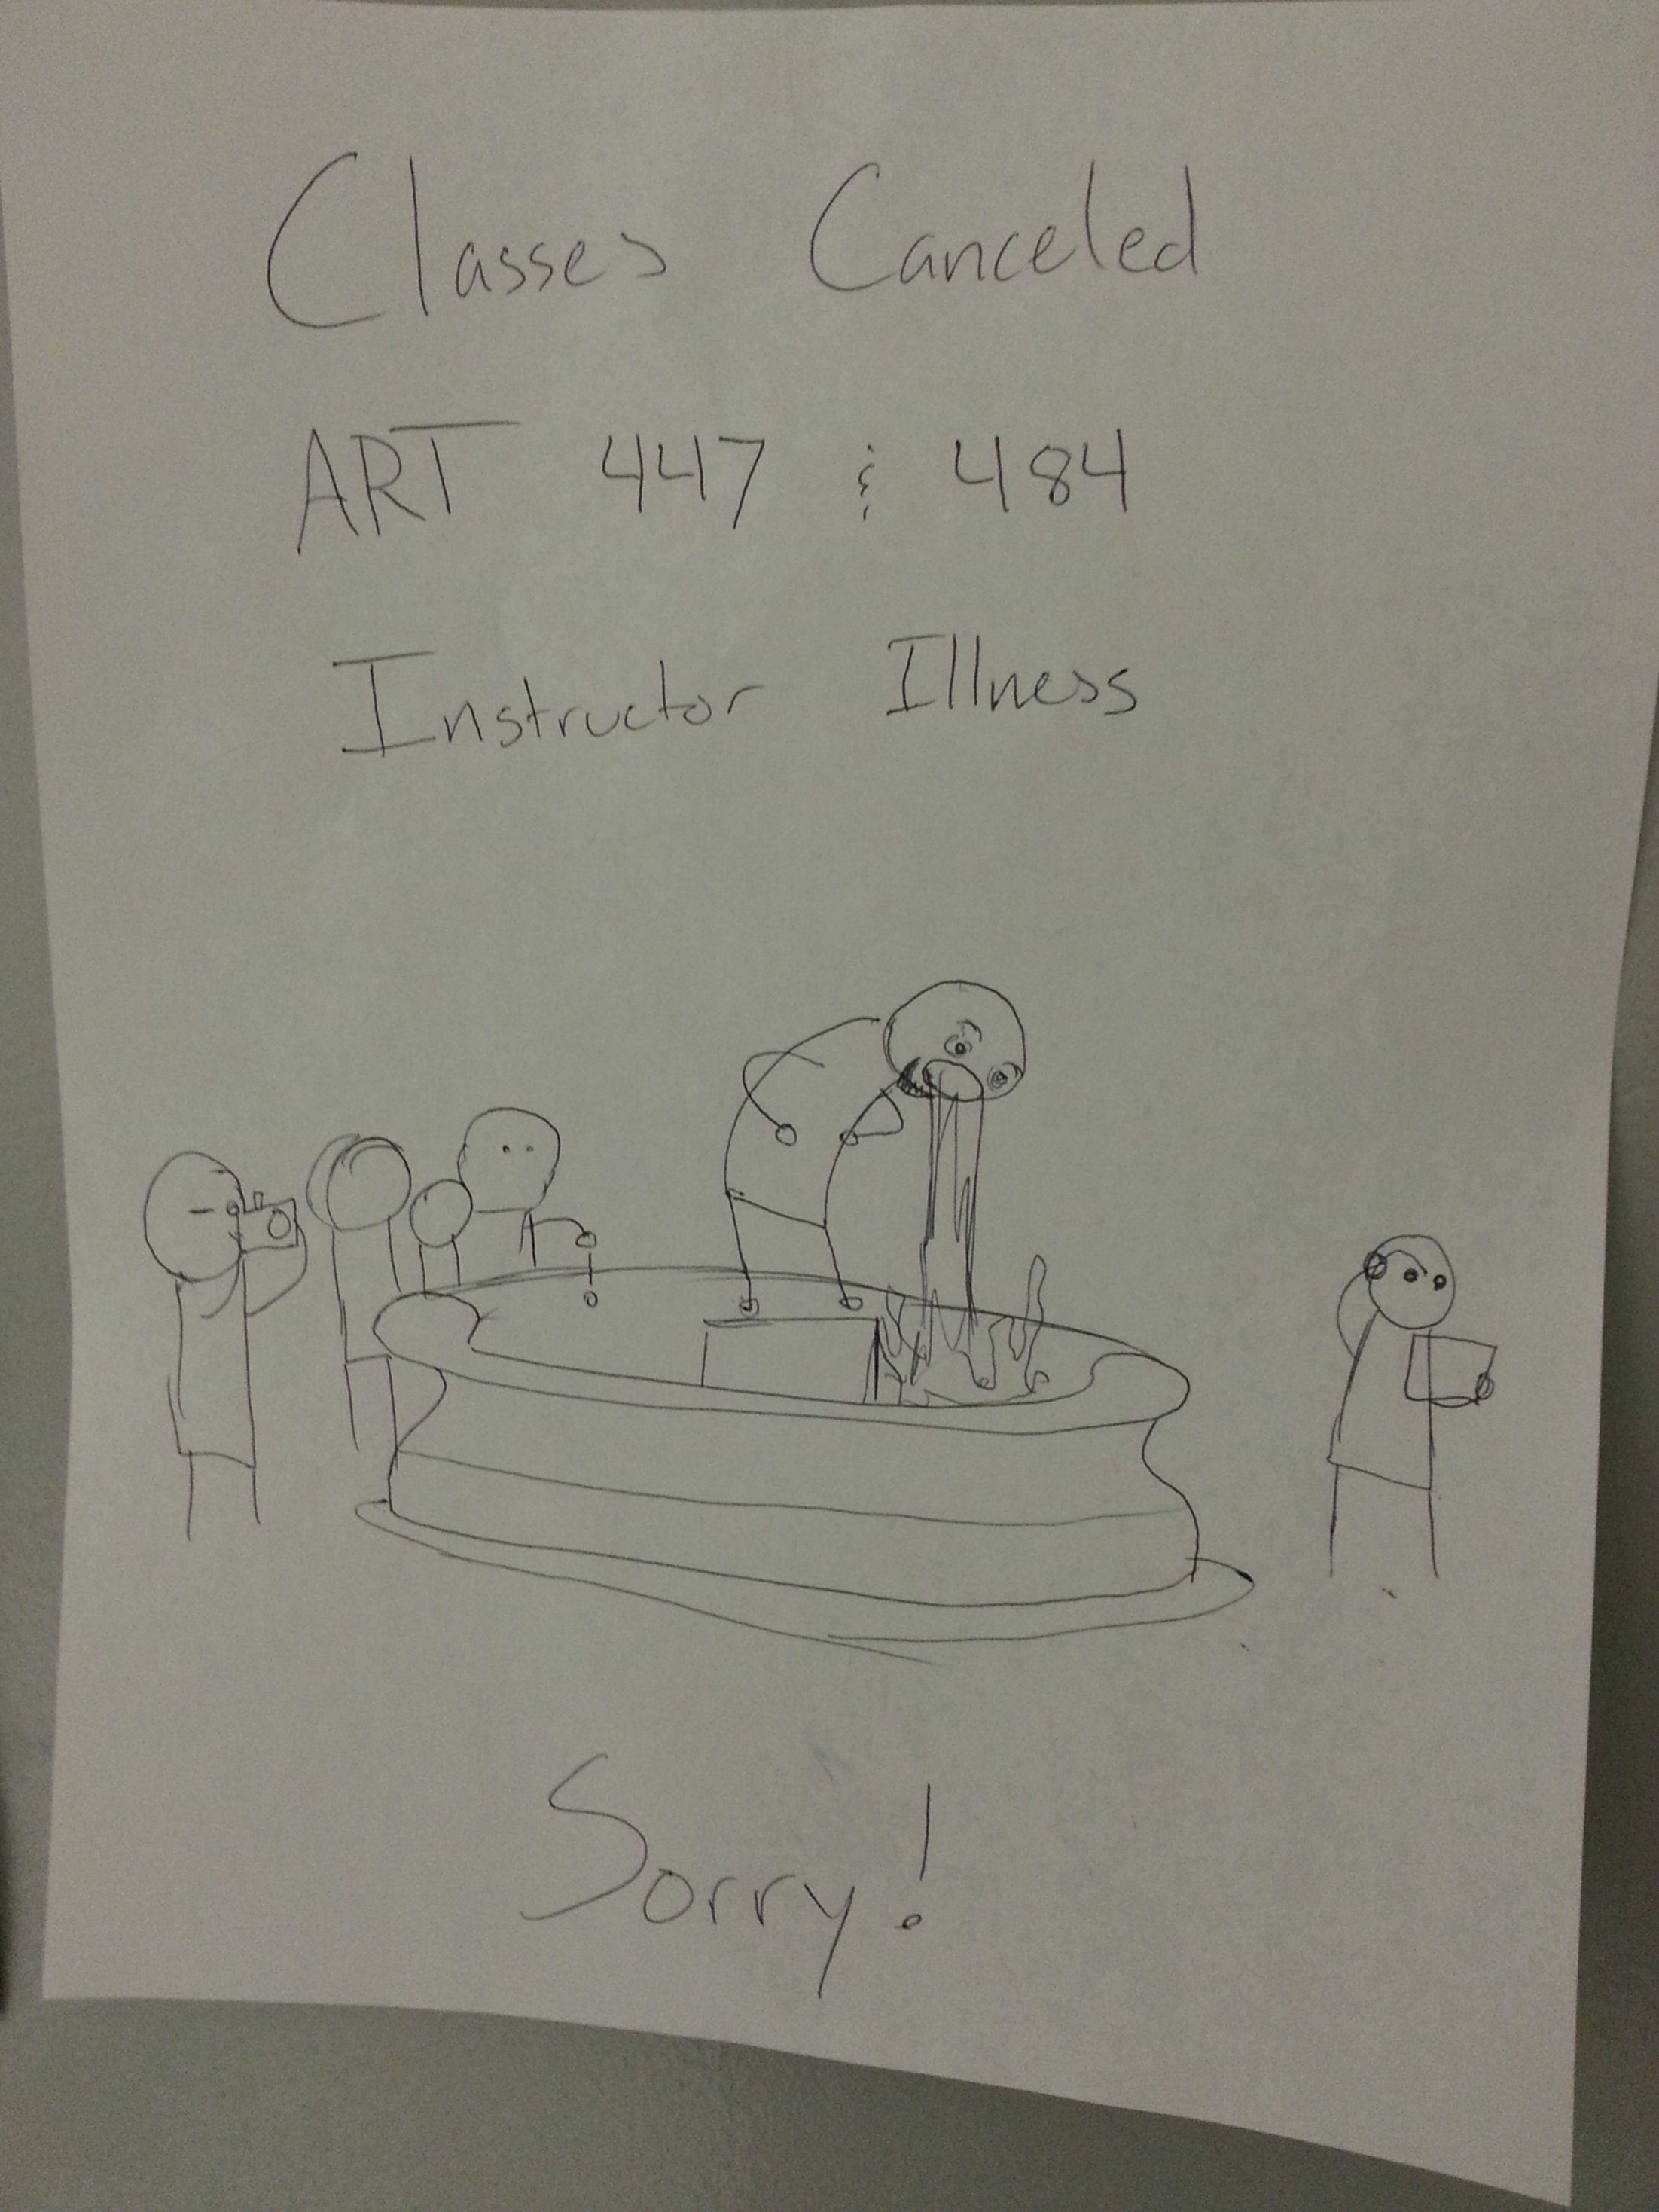 How to let your students know art class is cancelled due to violent vomiting.